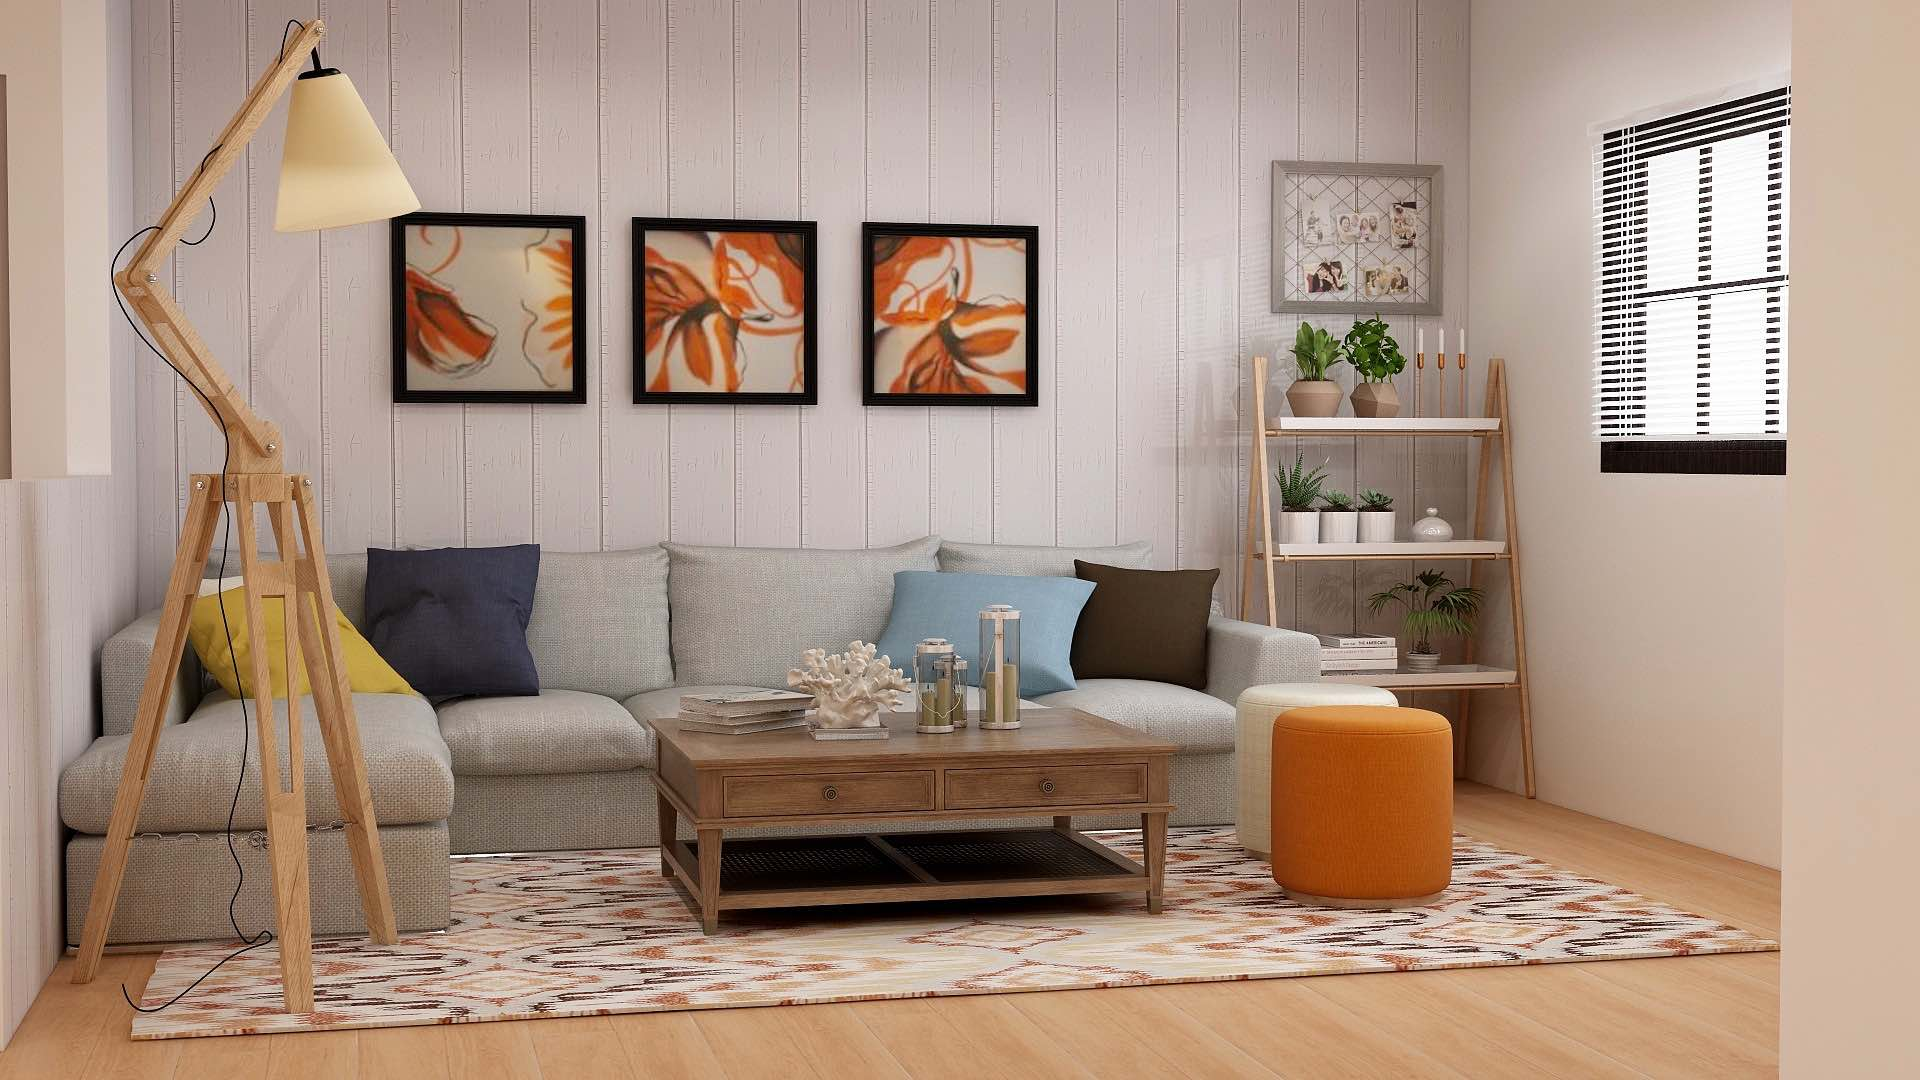 Mid-Century Modern living room with gray sofa, patterned rug, wooden furniture, and parquet flooring